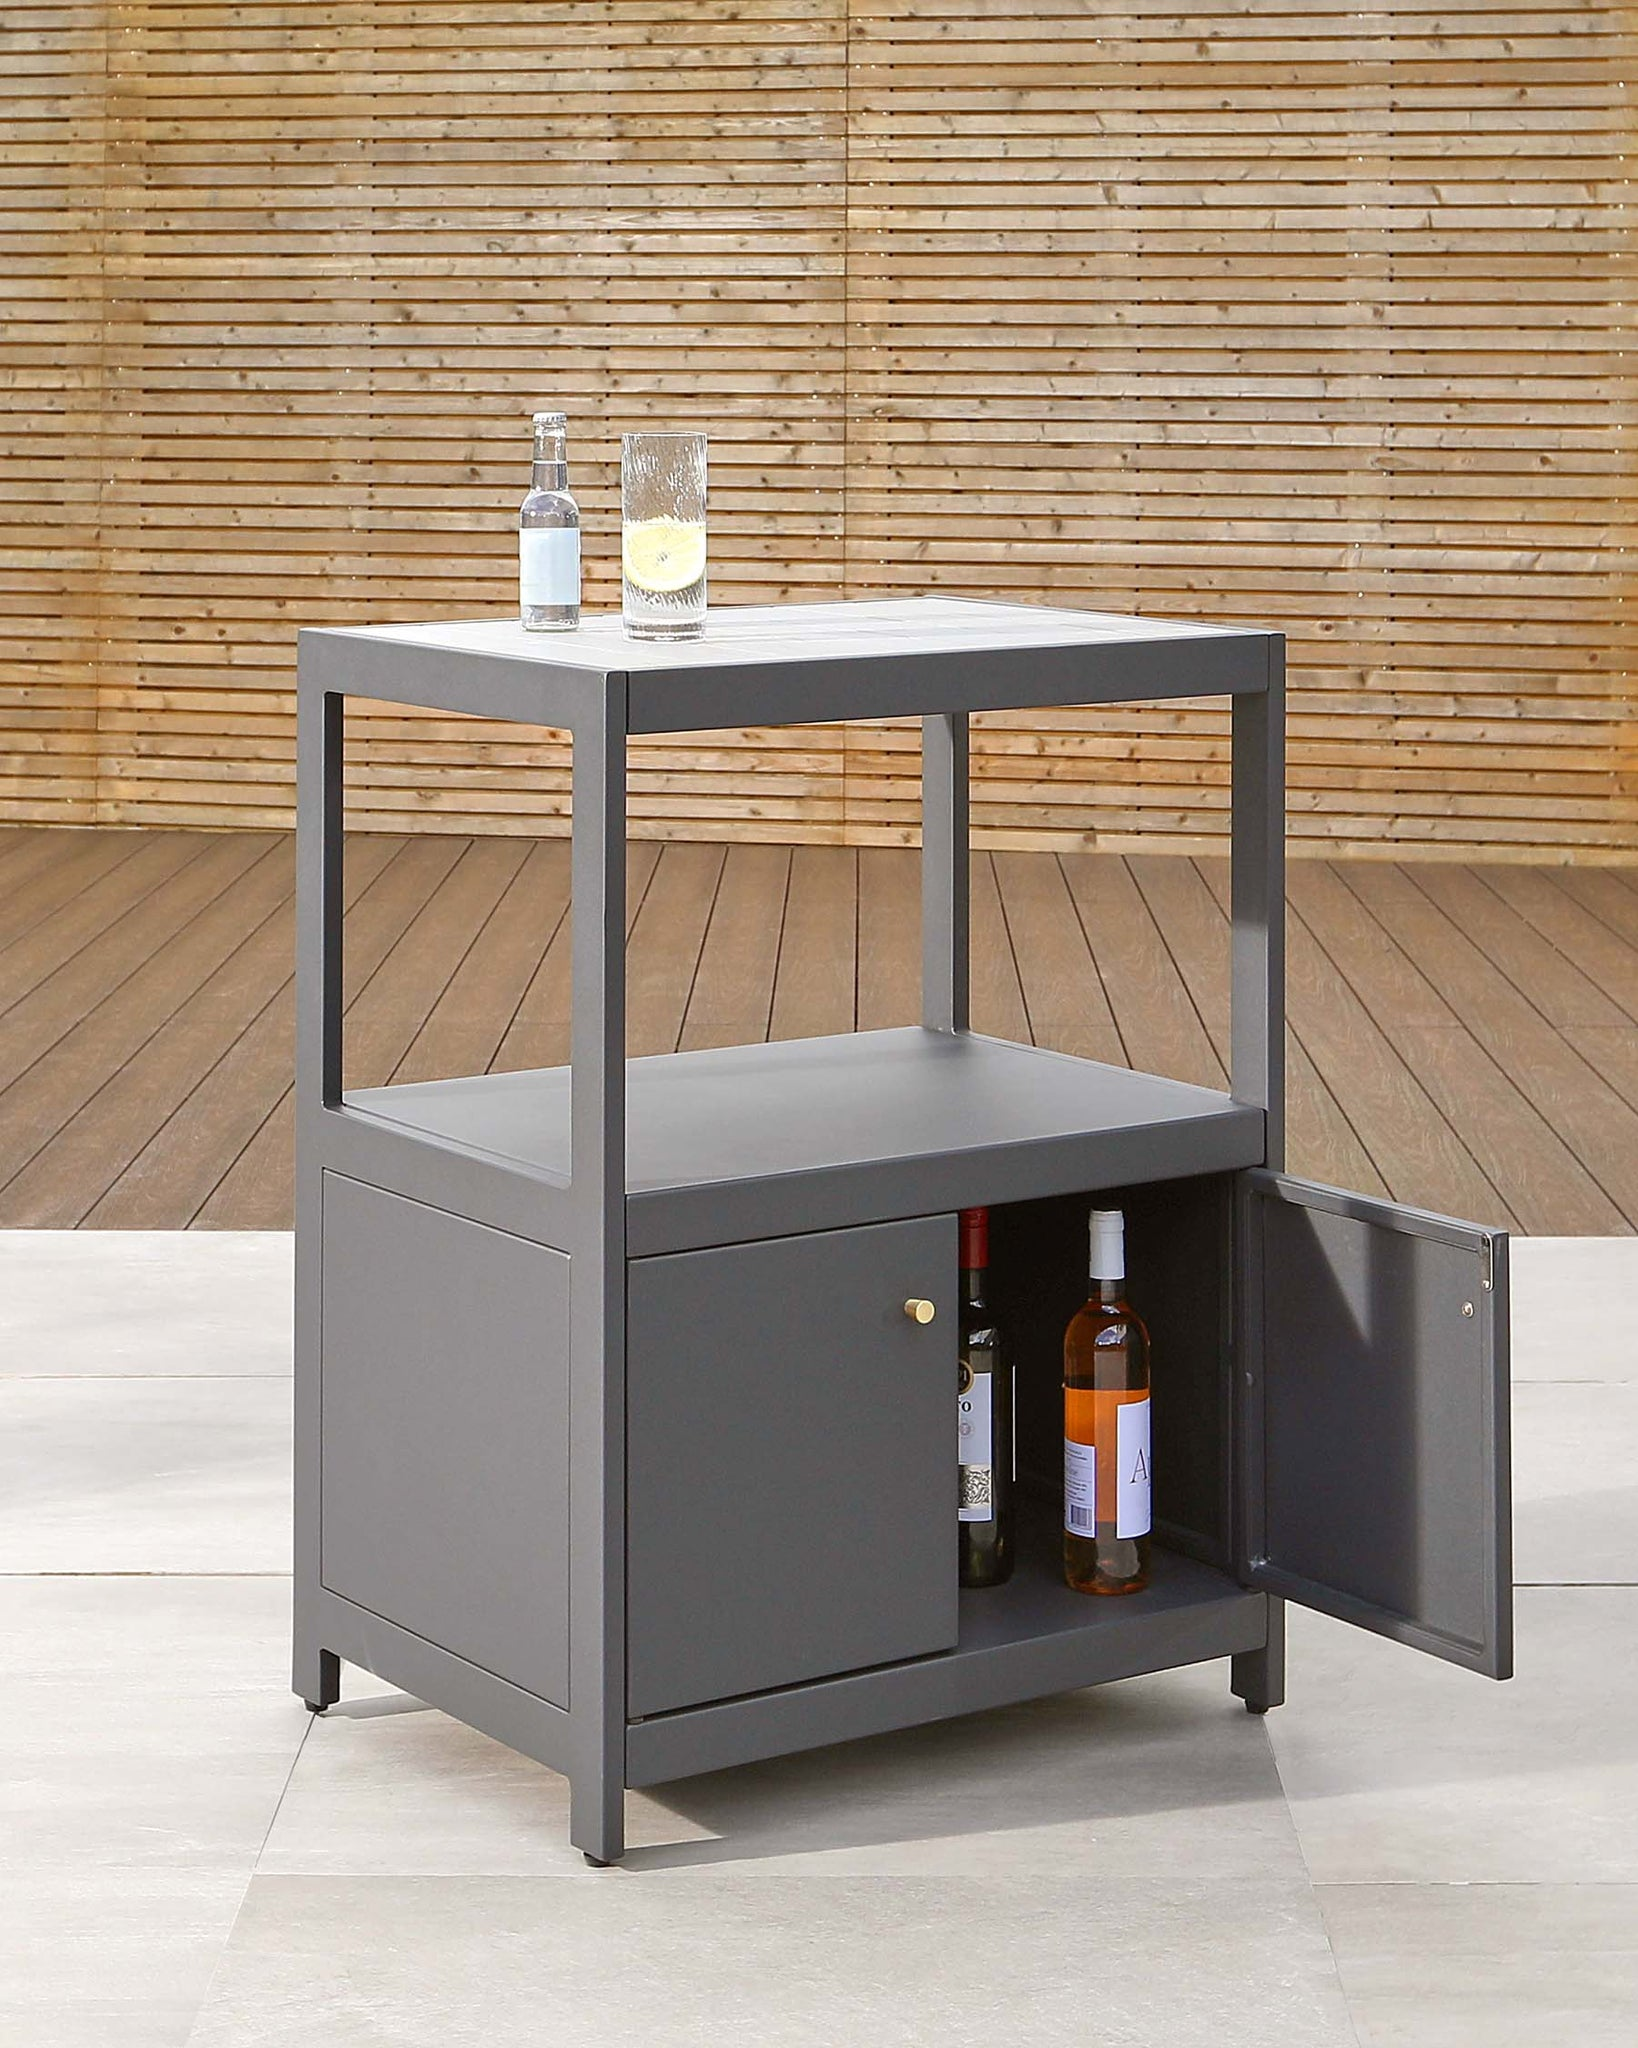 Palm Outdoor Kitchen Cabinet